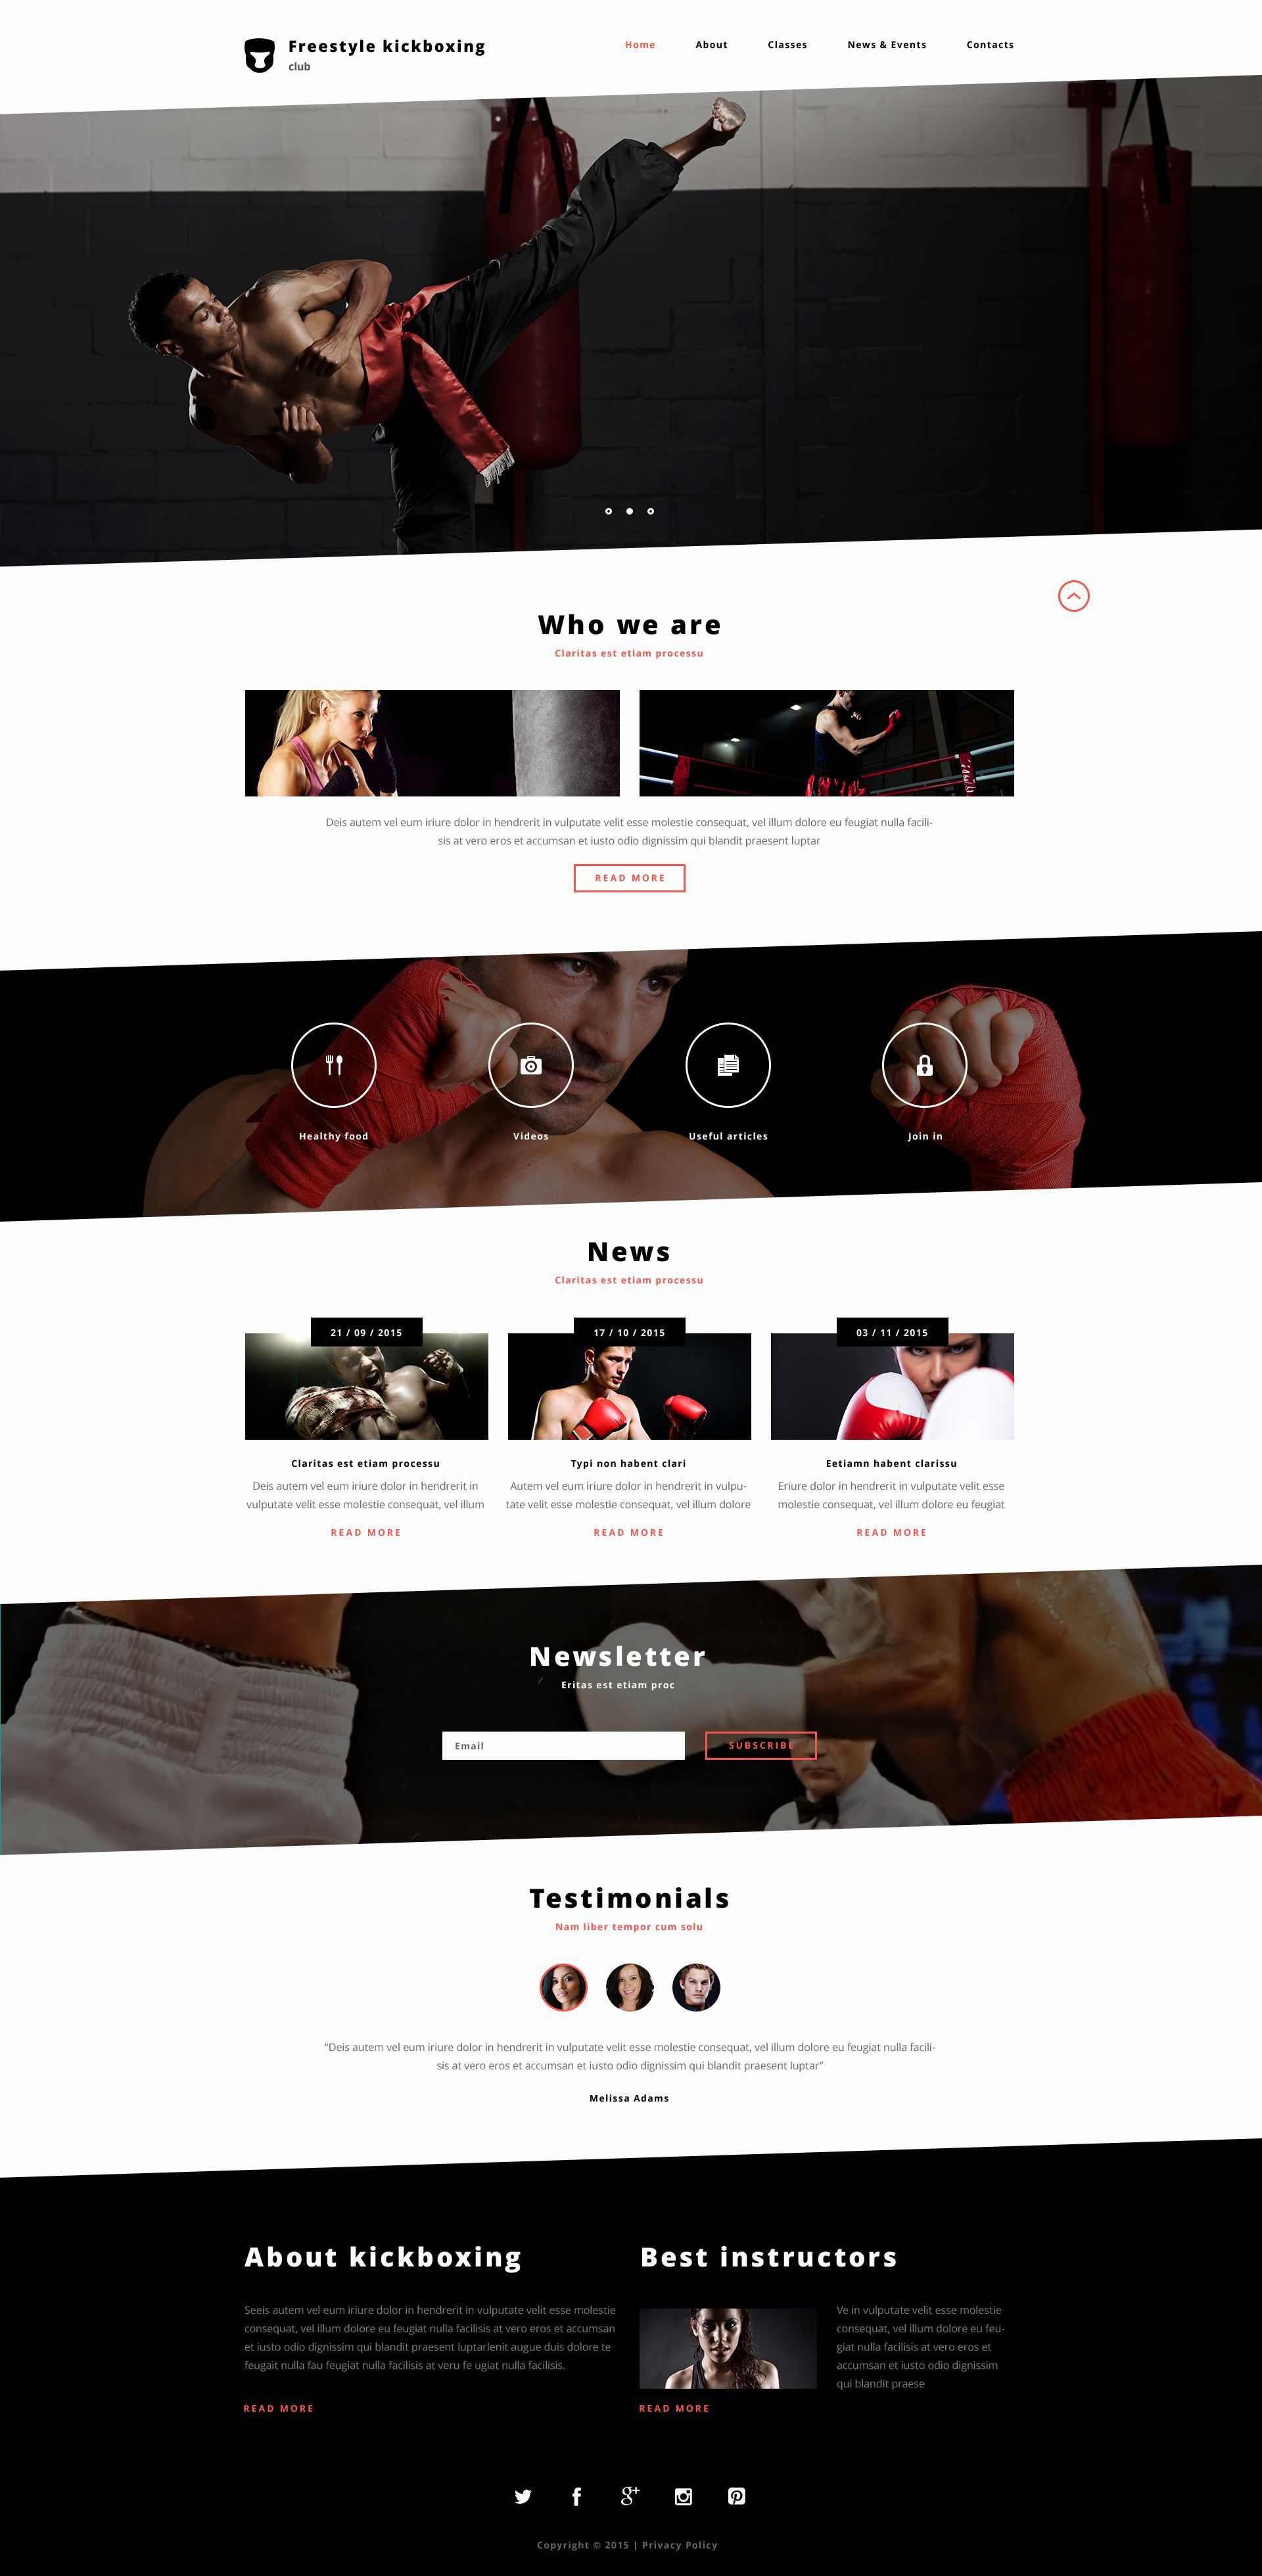 The Freestyle Kickboxing Bootstrap Design 53400, one of the best website templates of its kind (sport, most popular), also known as freestyle kickboxing website template, martial website template, arts website template, asia website template, asian website template, asians website template, training website template, fight website template, sport website template, fighter website template, sportsman website template, master website template, belt website template, weapon website template, kimono website template, judo website template, first website template, sword website template, will website template, pride website template, honour power school website template, coach website template, spirit website template, method website template, class website template, schedule website template, championship website template, world website template, martial website template, news website template, teacher website template, principles website template, instructors and related with freestyle kickboxing, martial, arts, asia, asian, asians, training, fight, sport, fighter, sportsman, master, belt, weapon, kimono, judo, first, sword, will, pride, honour power school, coach, spirit, method, class, schedule, championship, world, martial, news, teacher, principles, instructors, etc.